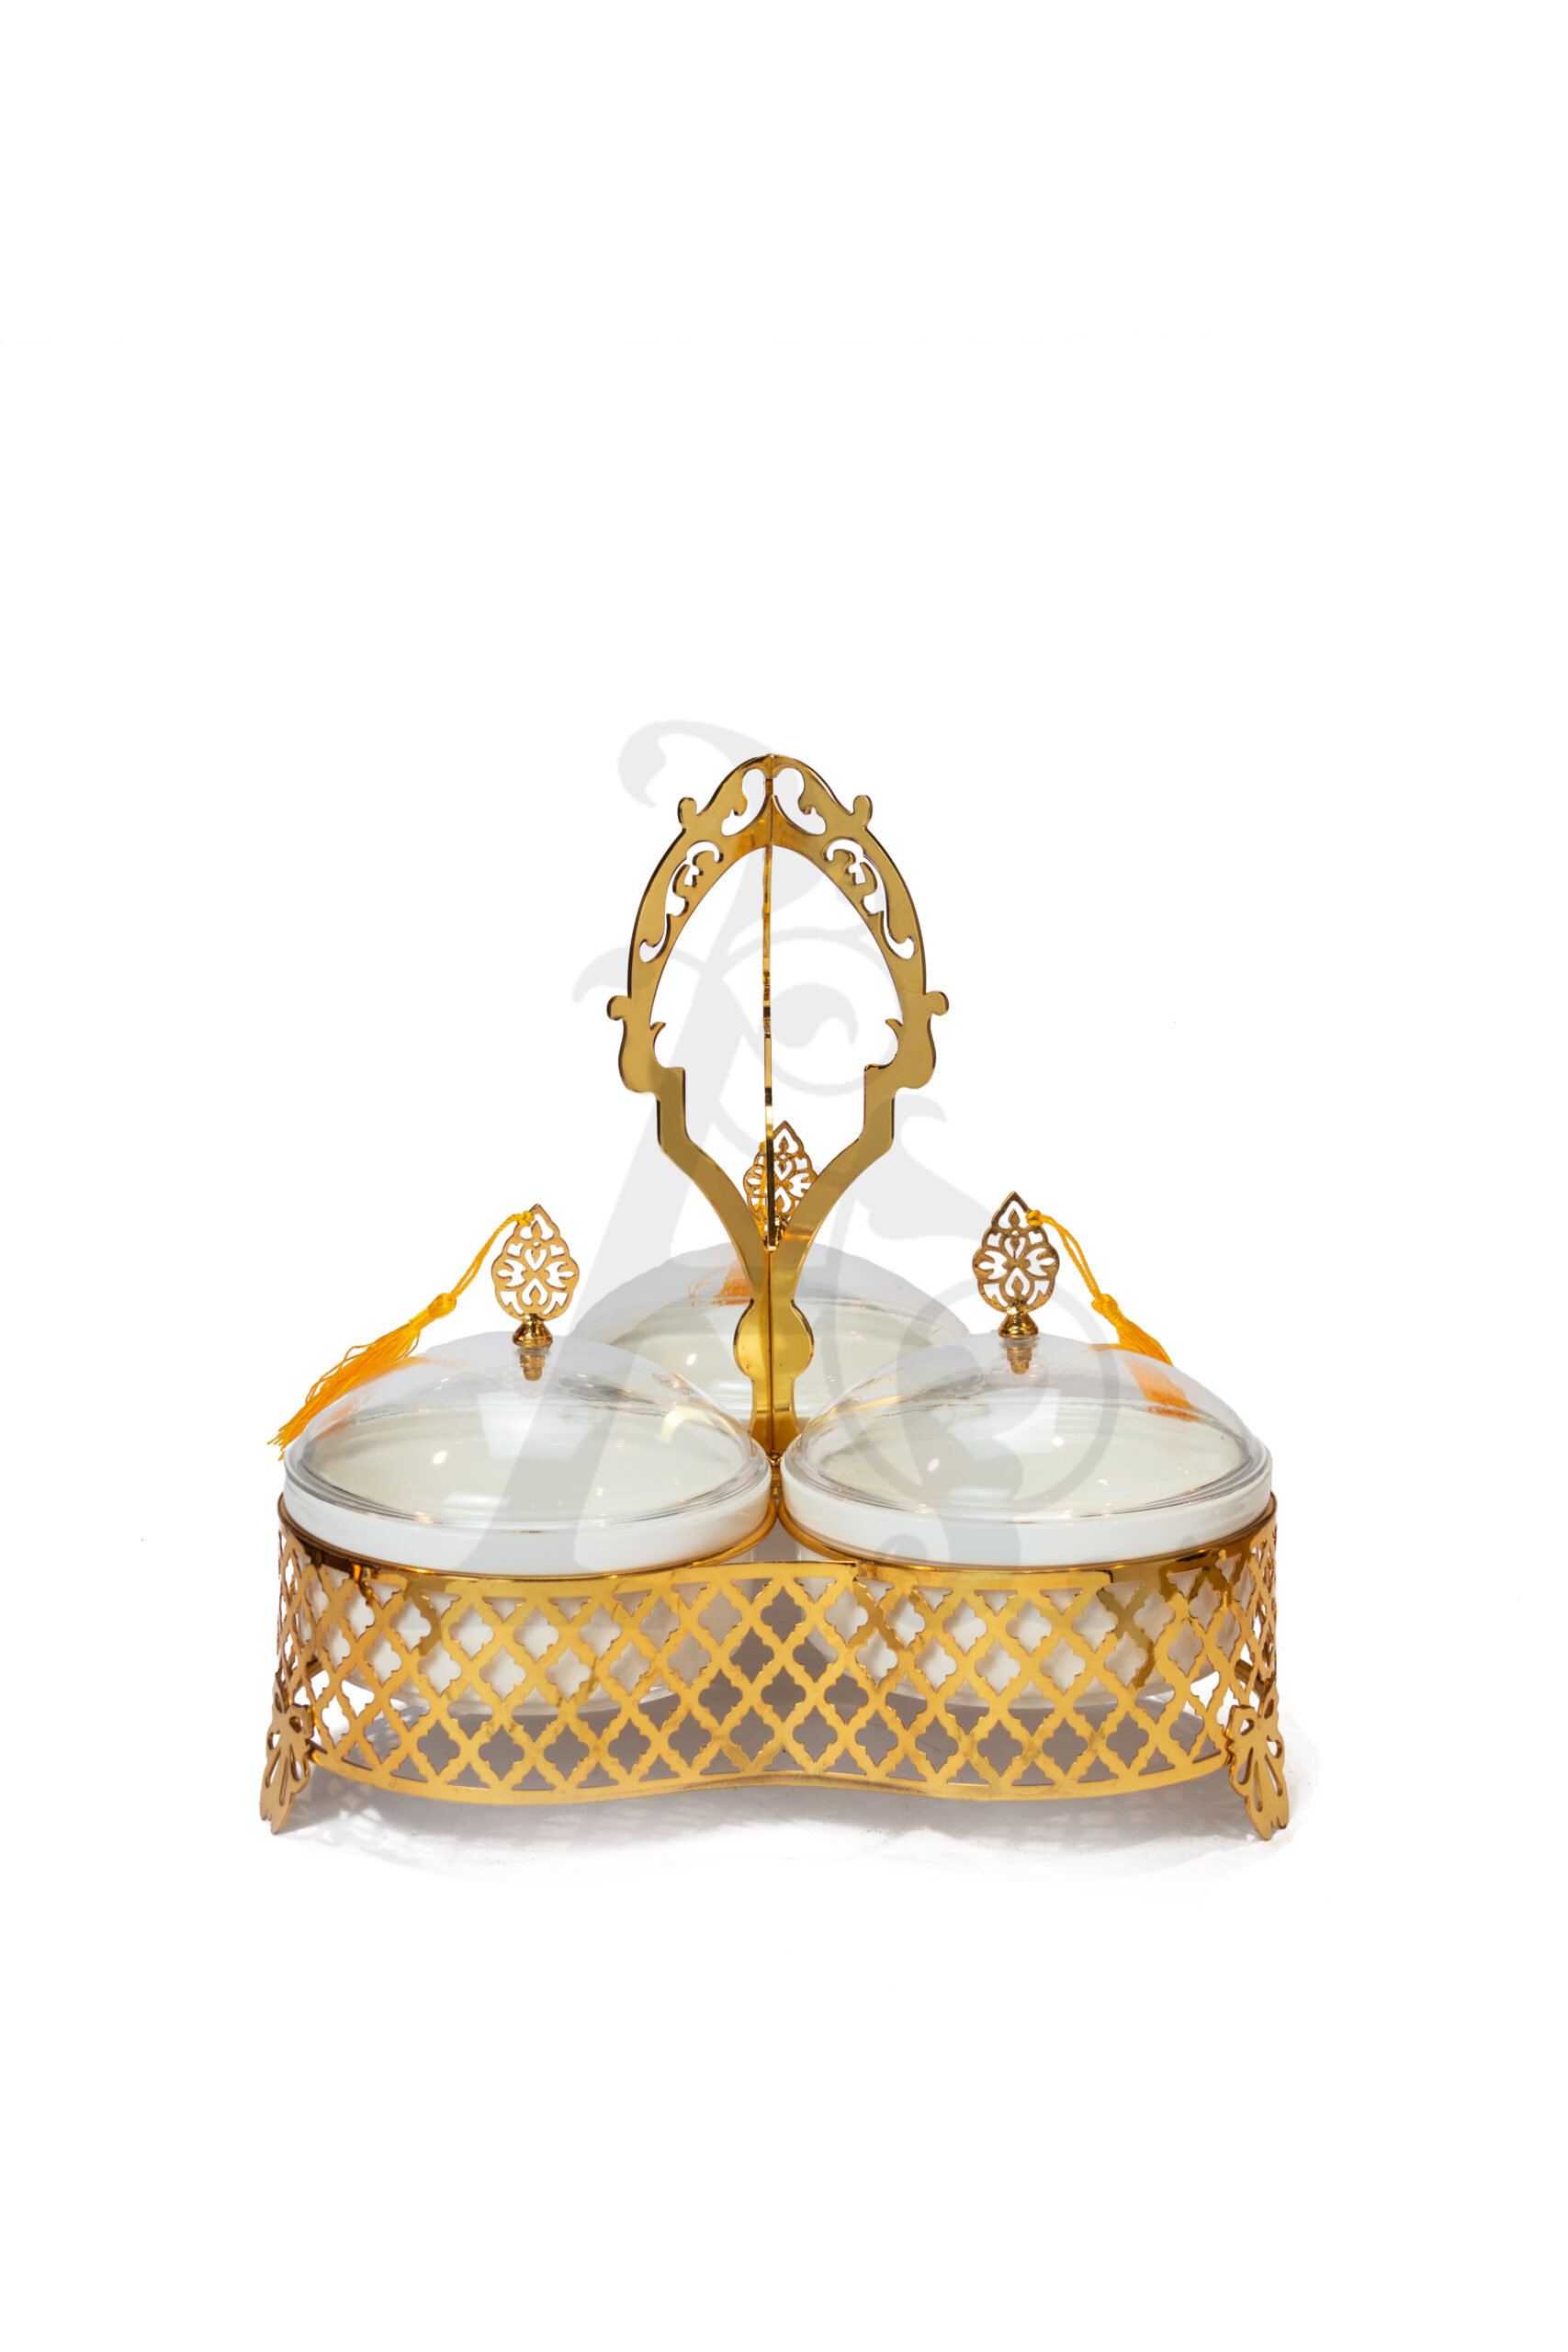 Buy Delight Servers 3 Pieces Gold and White 32x32